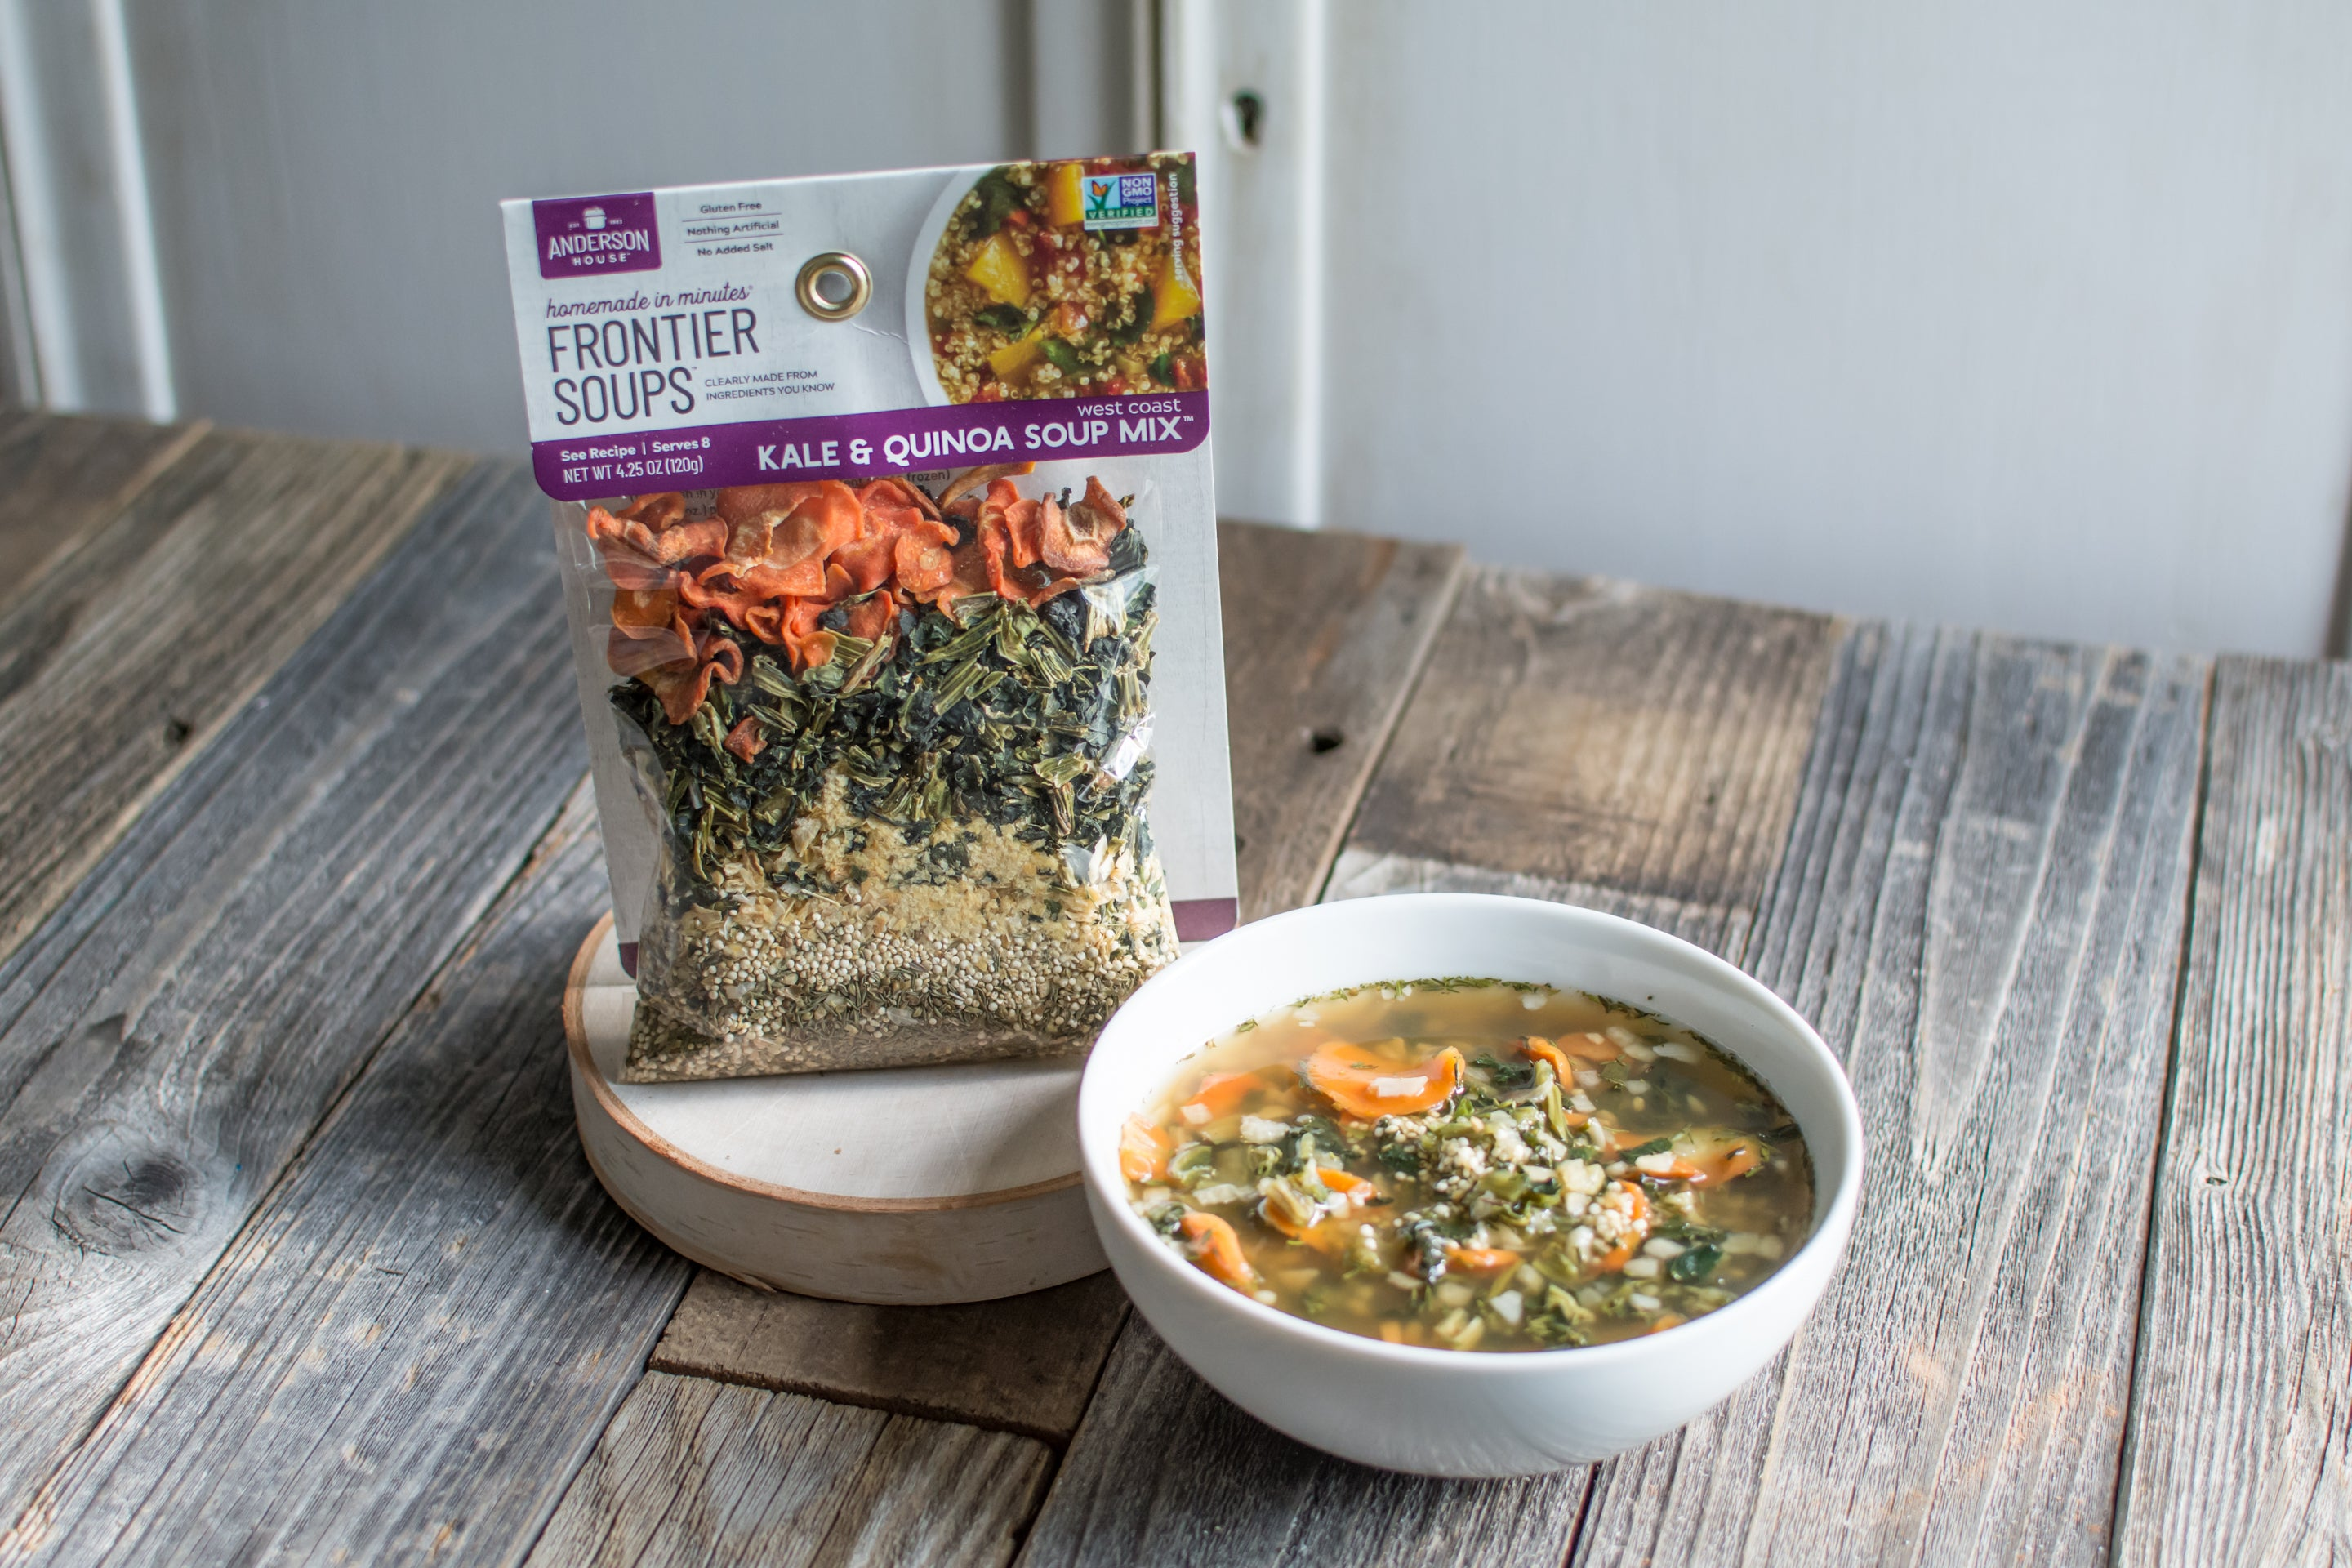 West Coast Kale and Quinoa Soup Mix